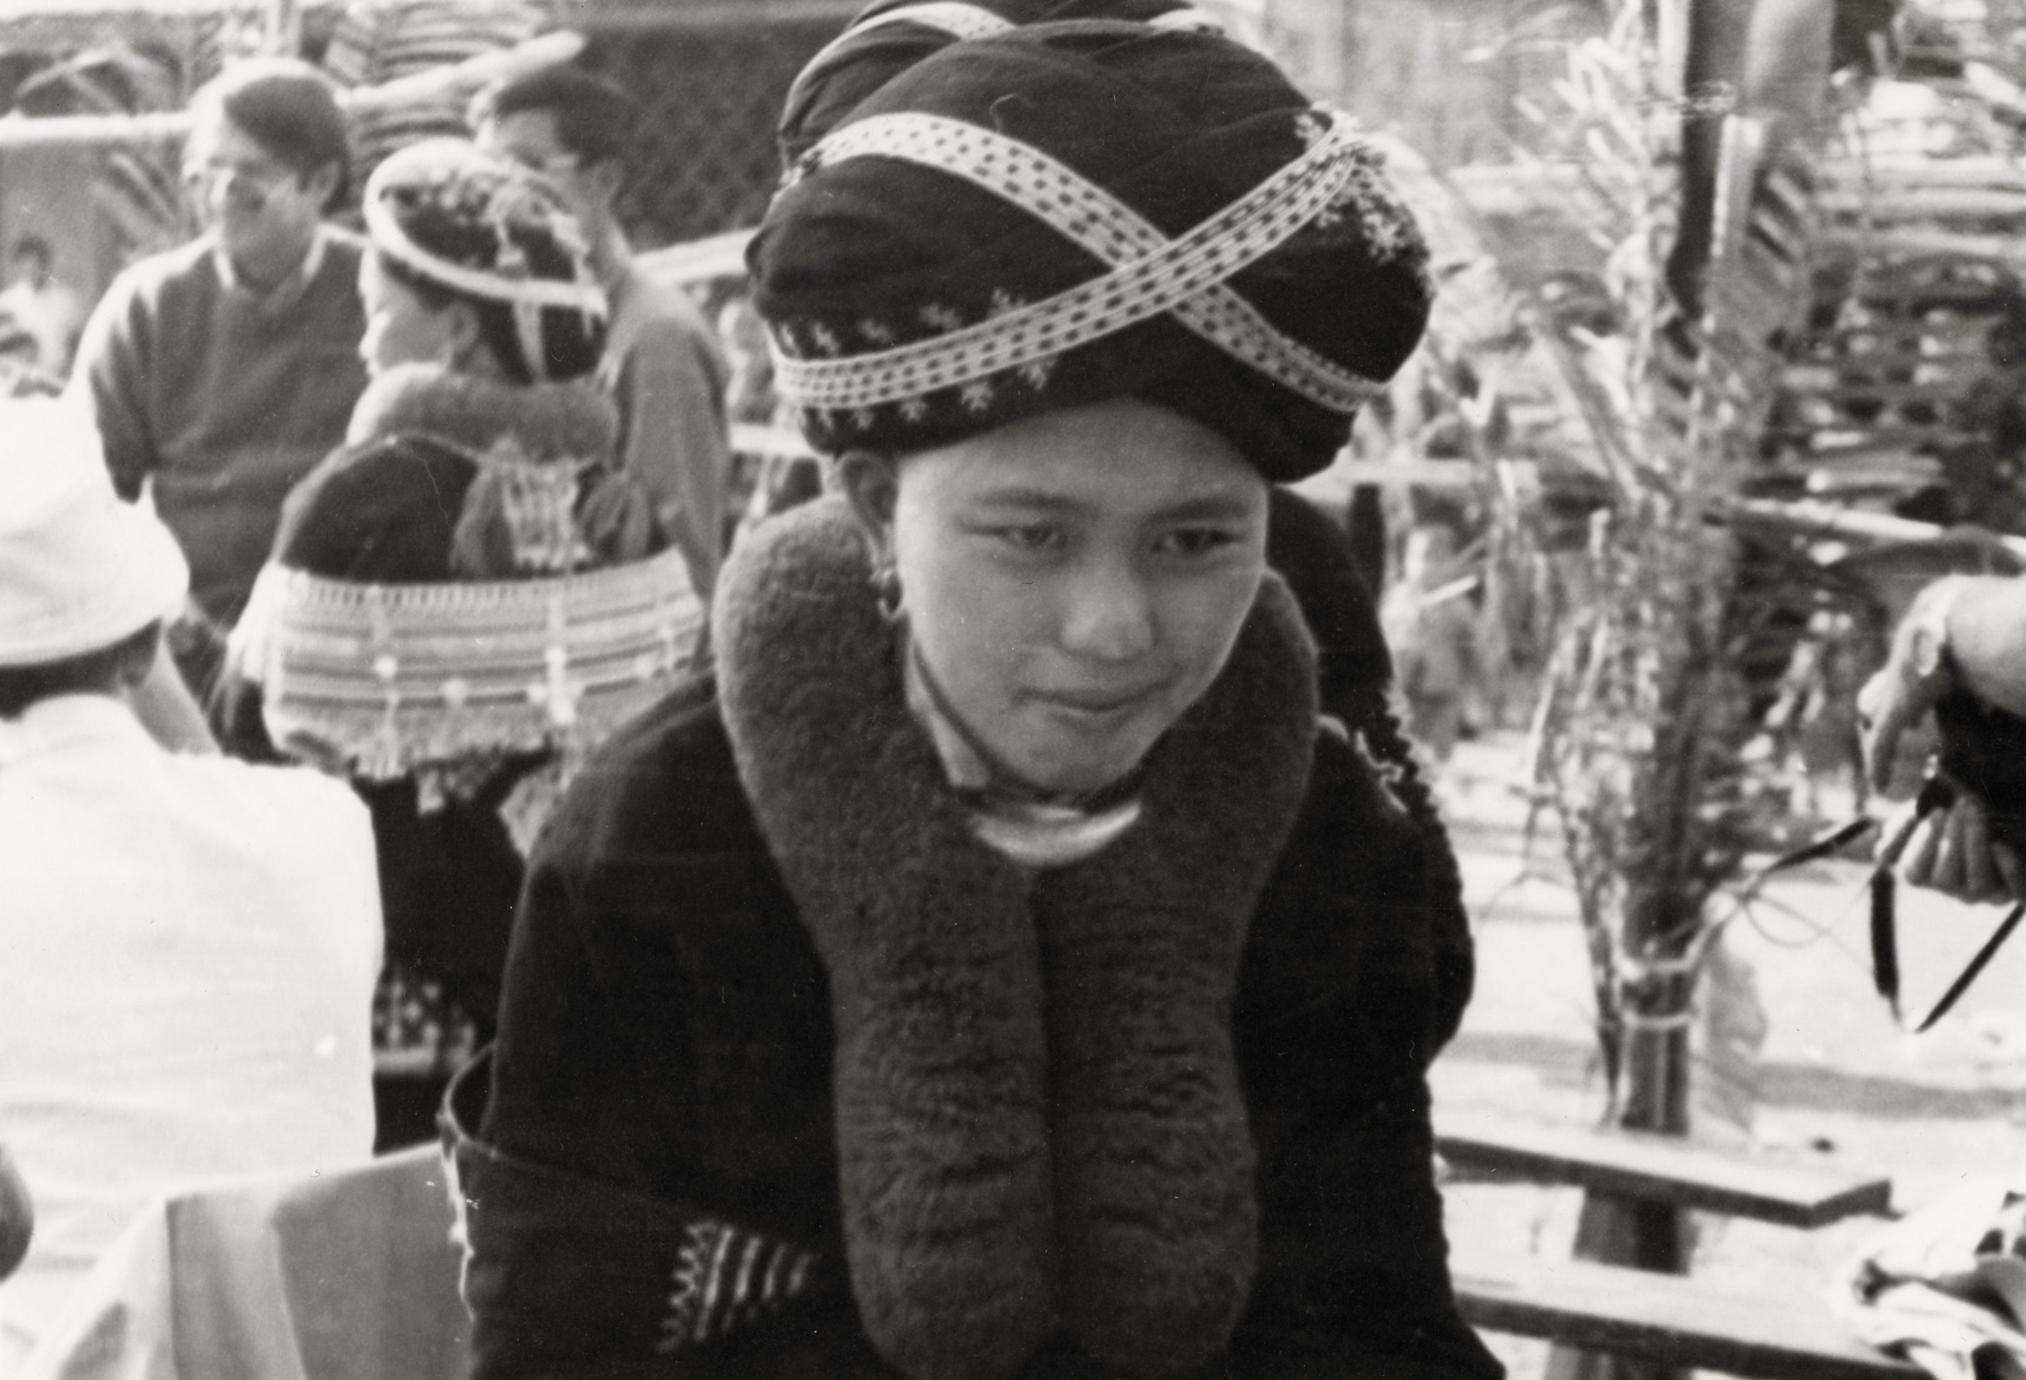 A Yao (Iu Mien) woman in traditional clothing in the village of Nam Kheung in Houa Khong Province